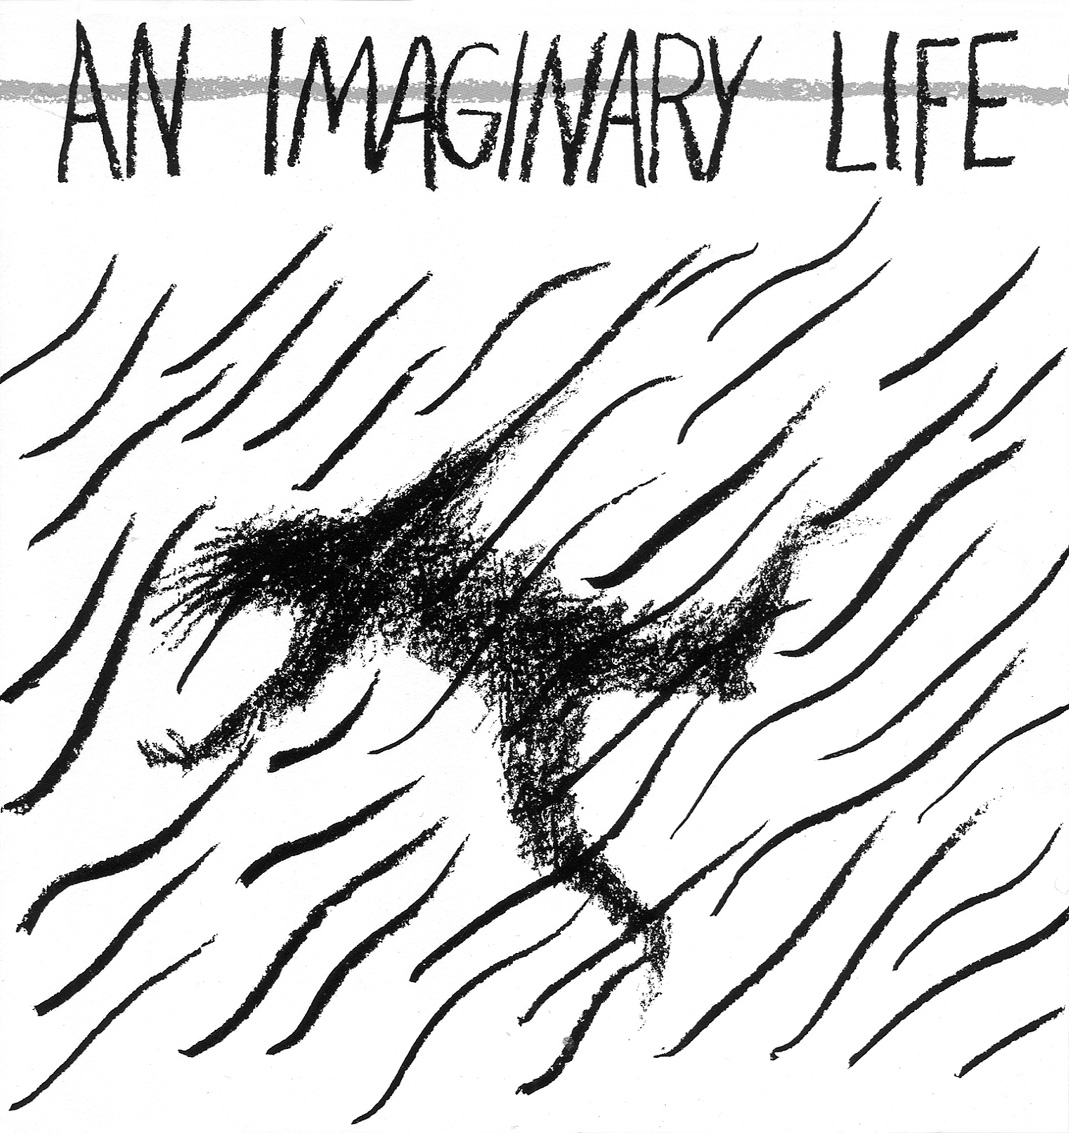 An Imaginary Life (poster drawing by Kim Carpenter)